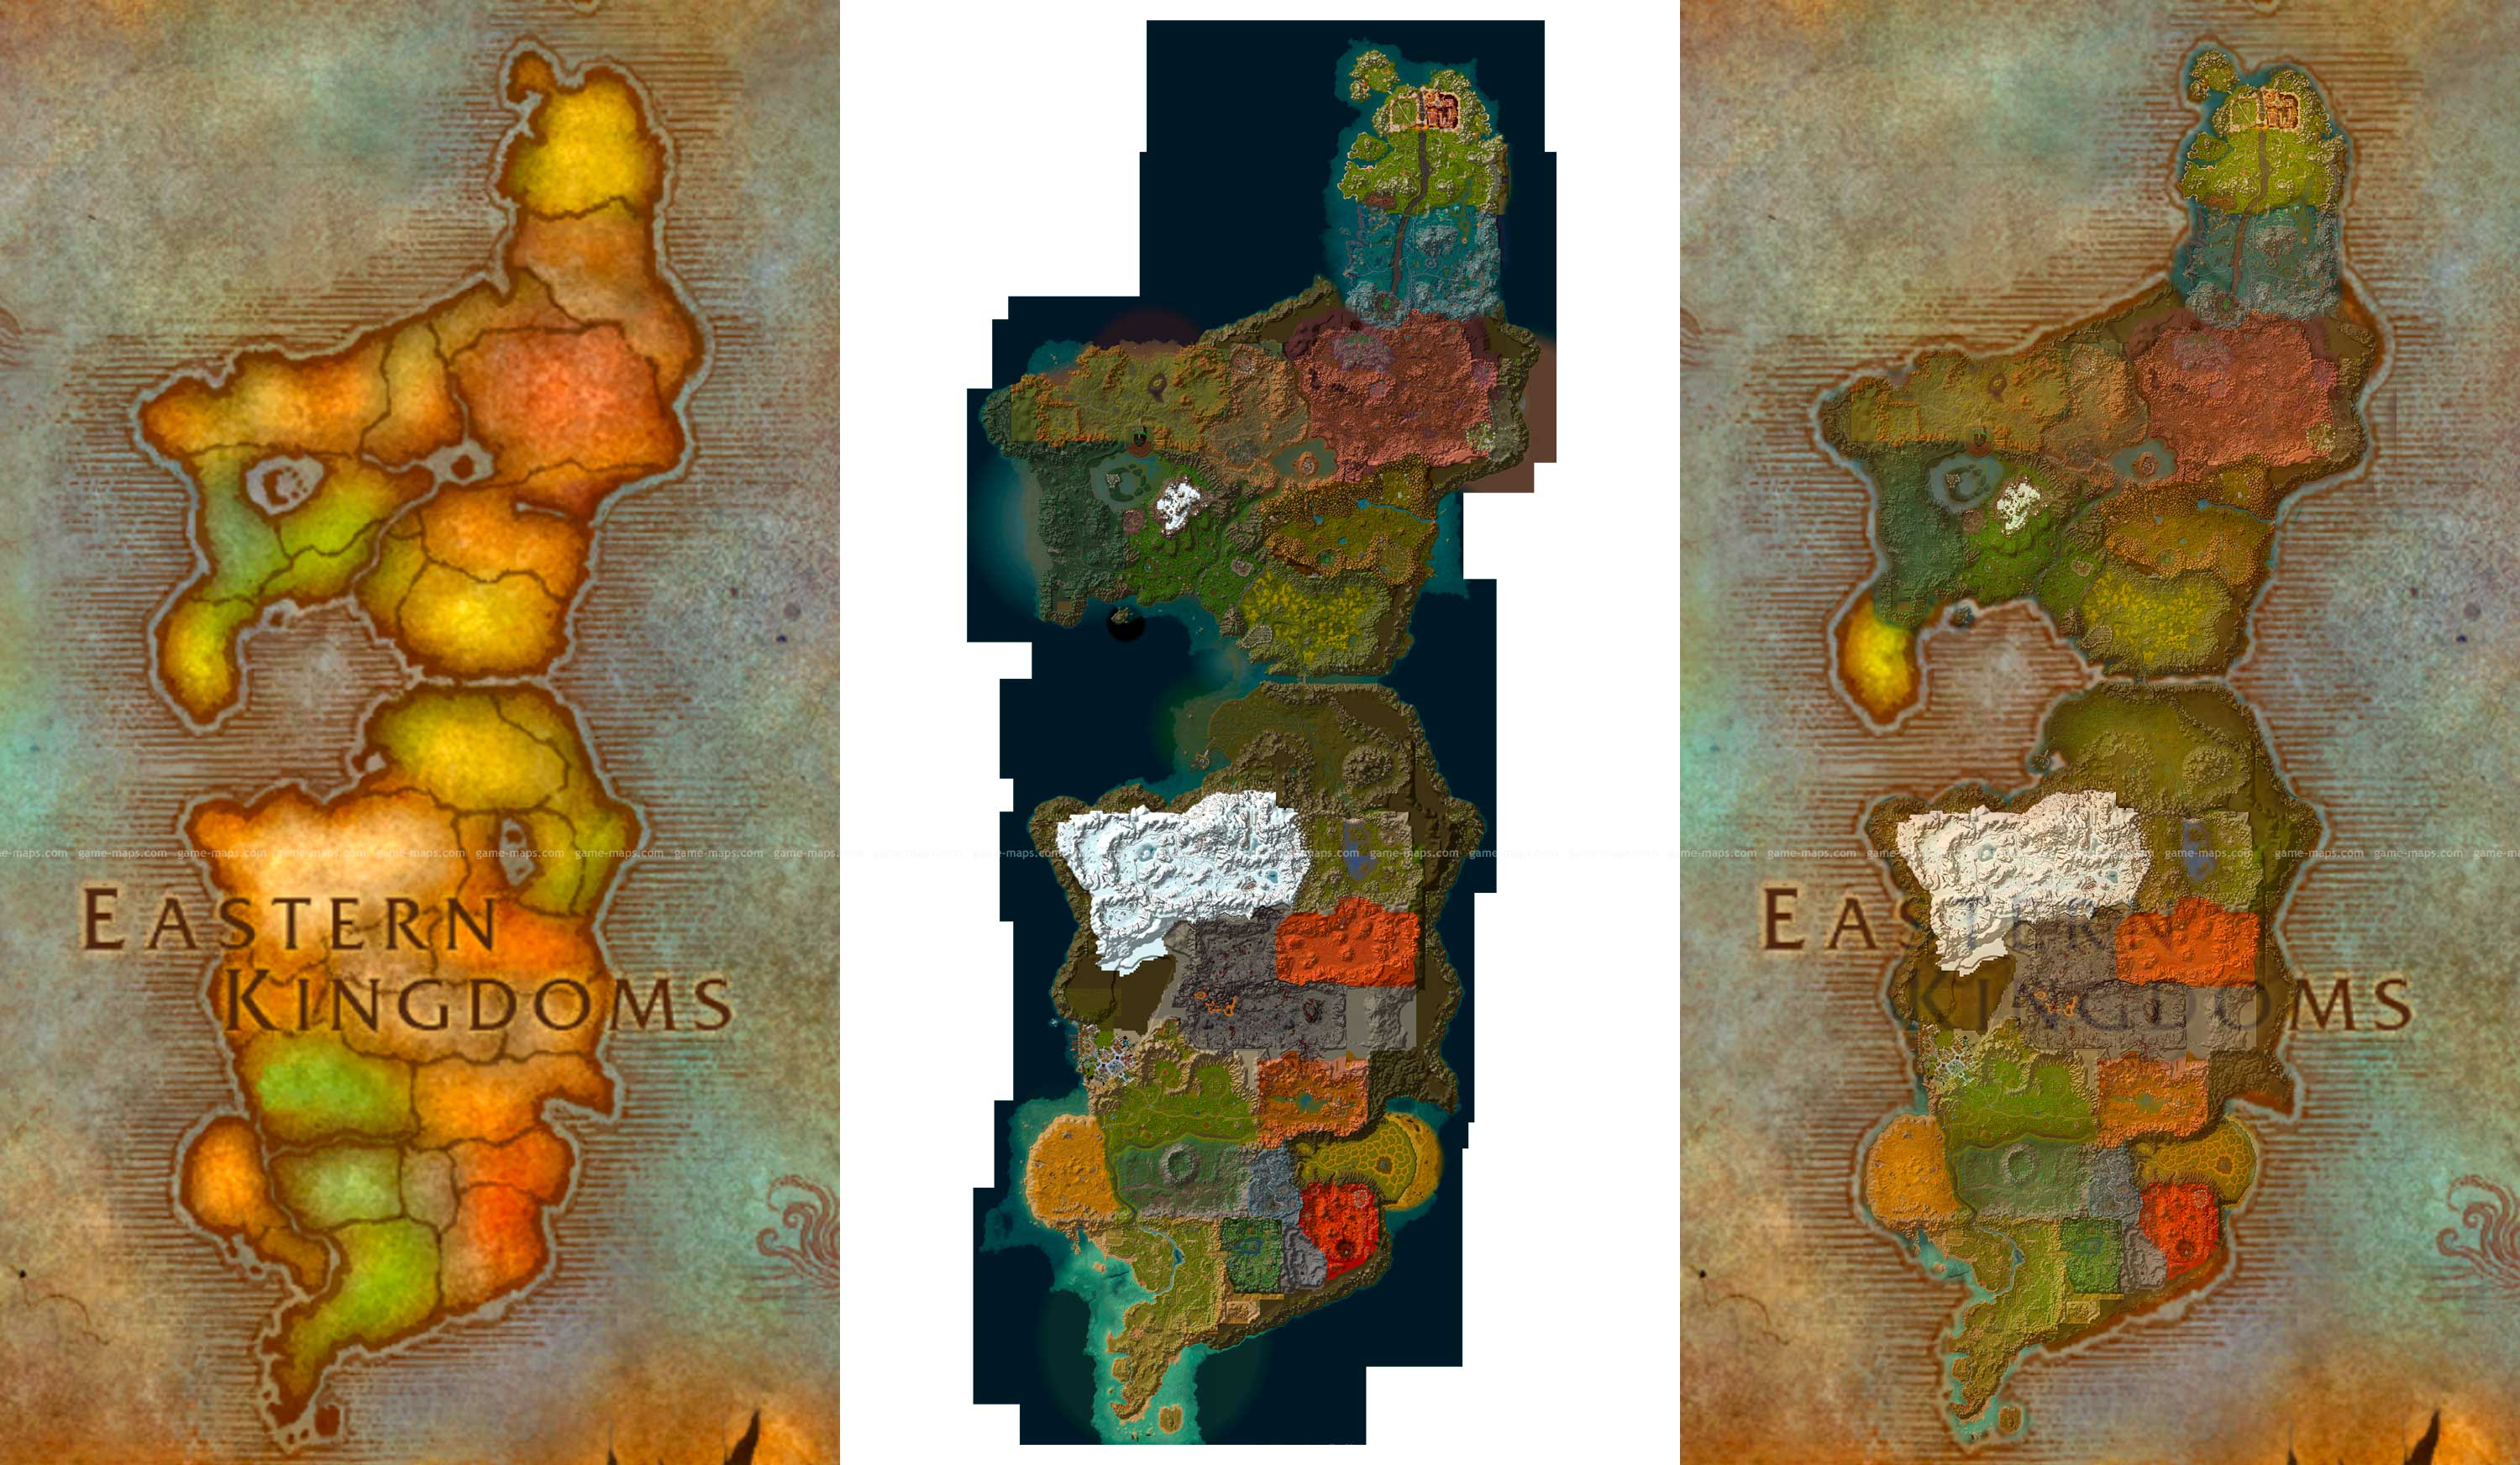 world of naruto map, world map with levels wow, doom map, warcraft 2 map, wow alliance map, starcraft ii map, northrend map, wow interactive map, prime world map, full wow map, everquest map, world of world map, world of starcraft 2, elder scrolls map, eastern kingdoms map, apocalypse world map, aion guide map, world of tanks maps, league of legends map, world of demon, on world of warcraft maps